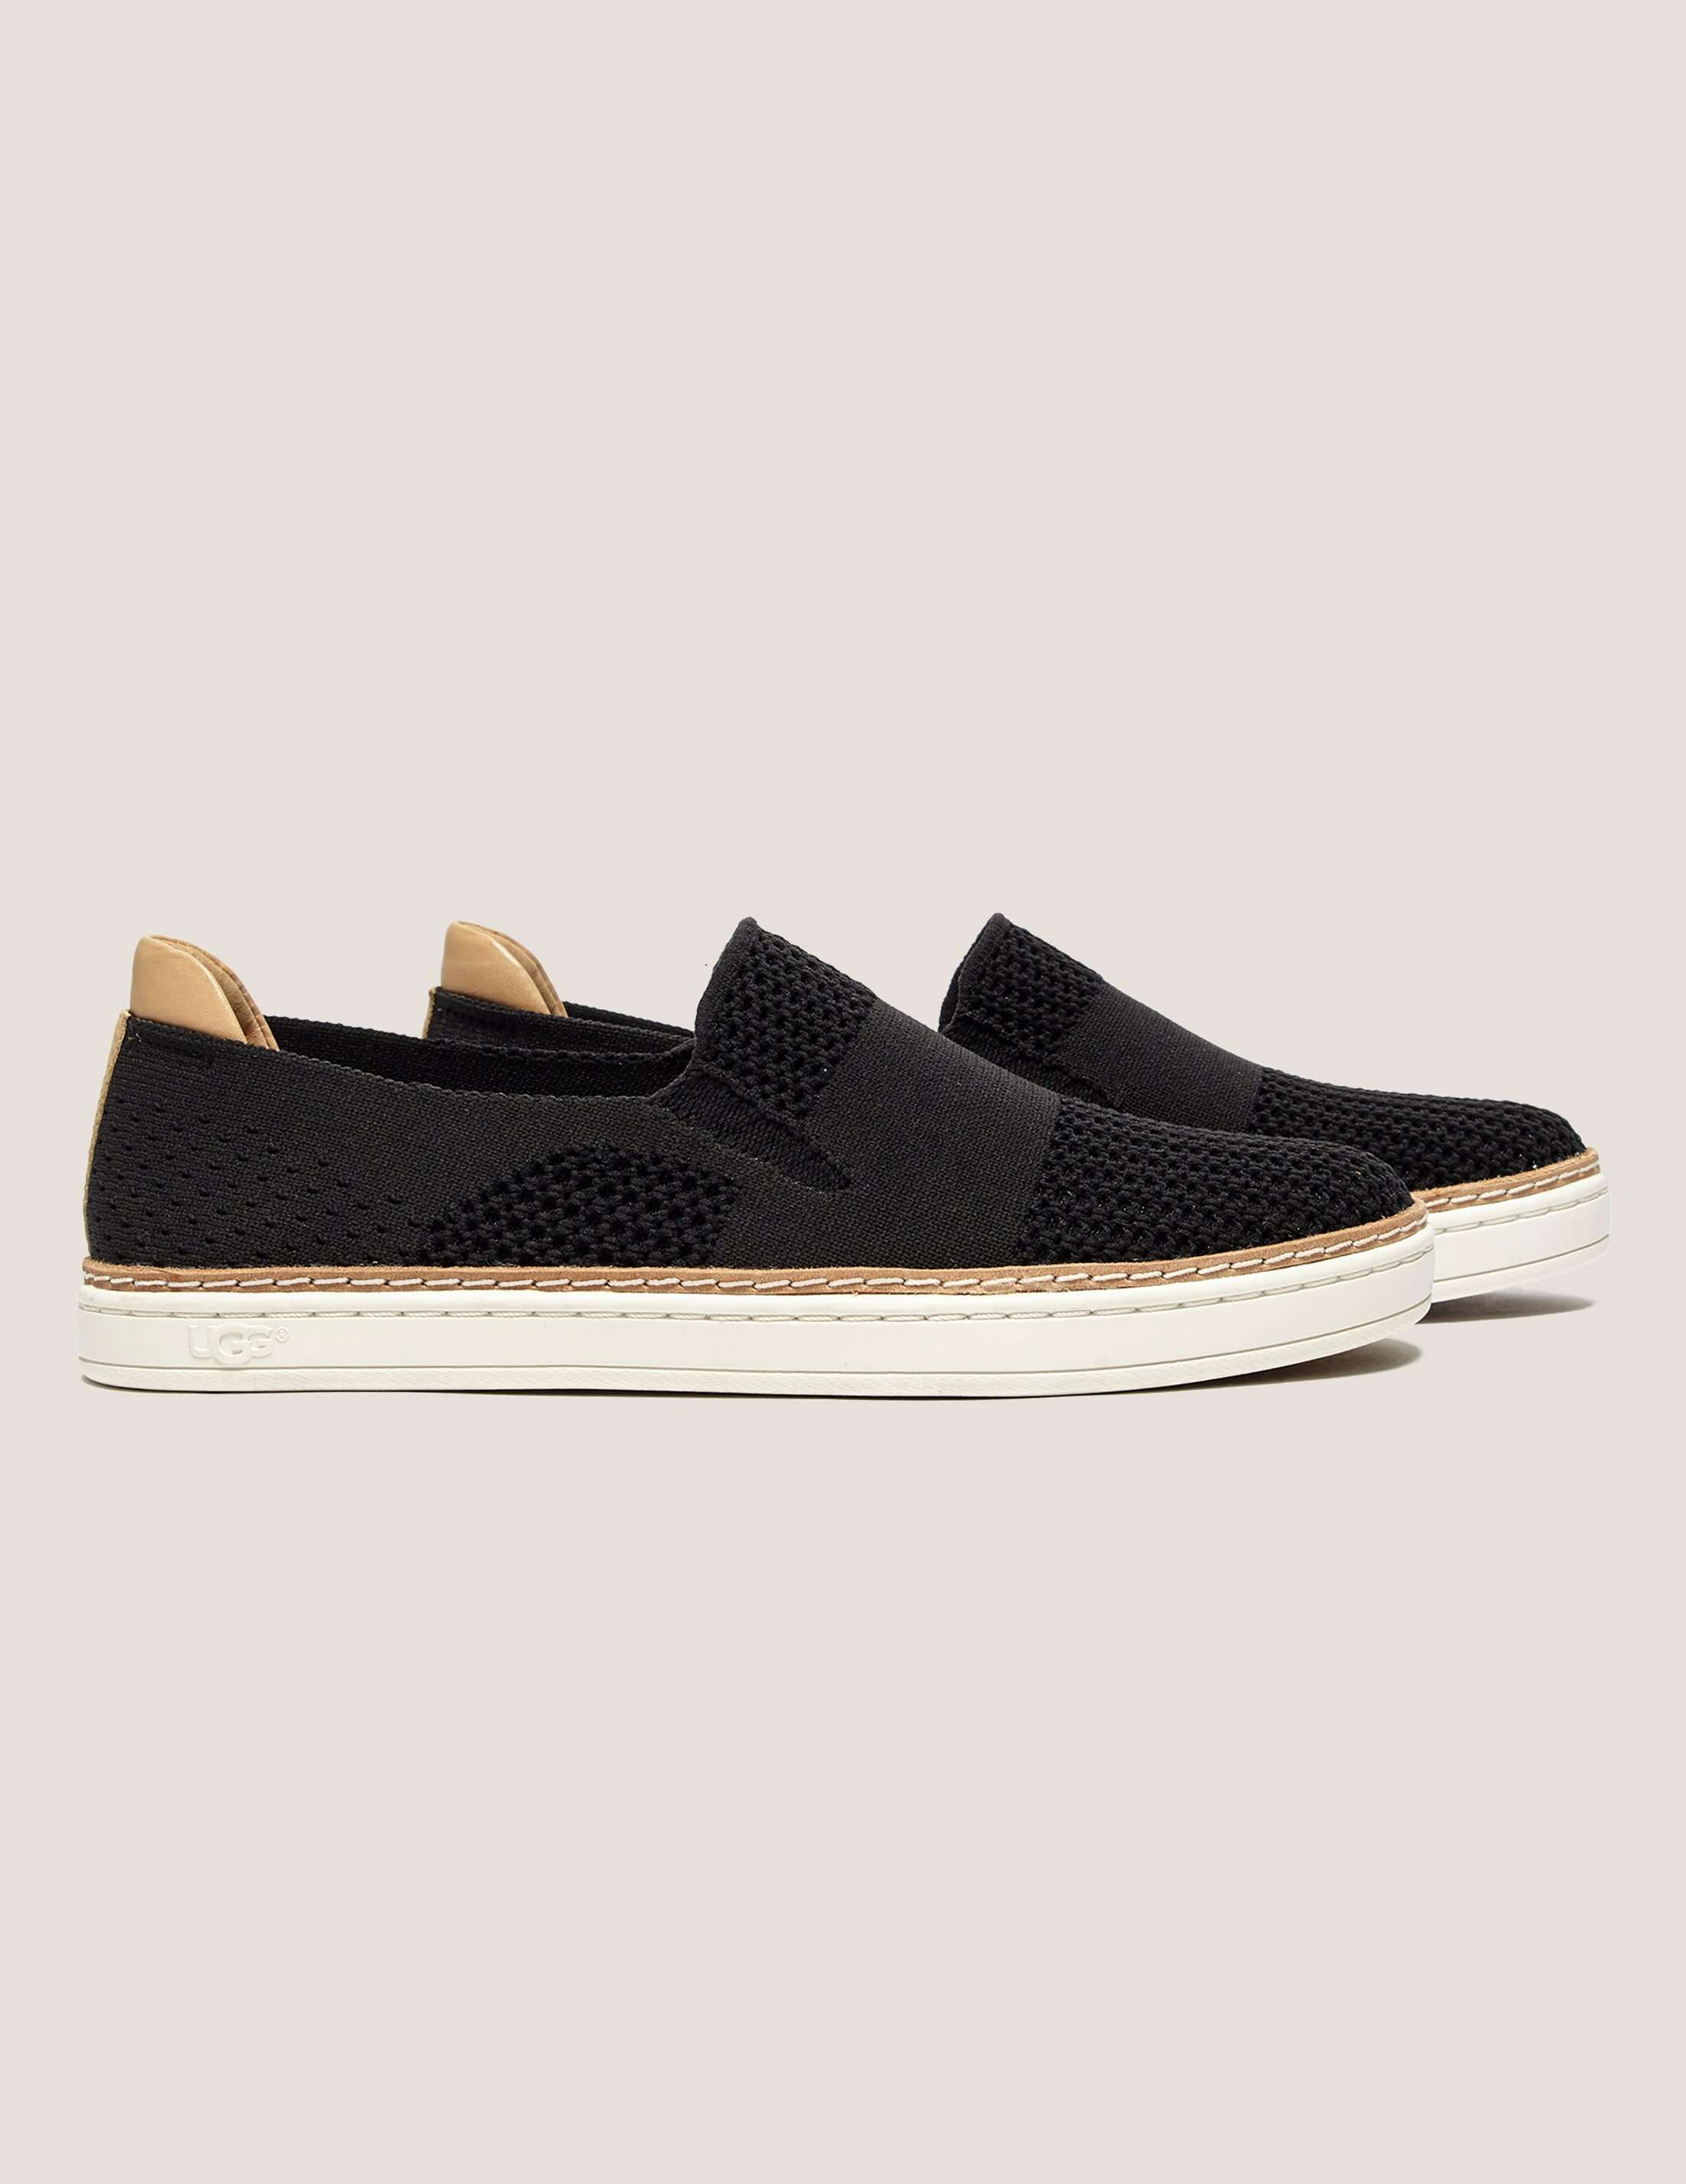 UGG Sammy Slip On